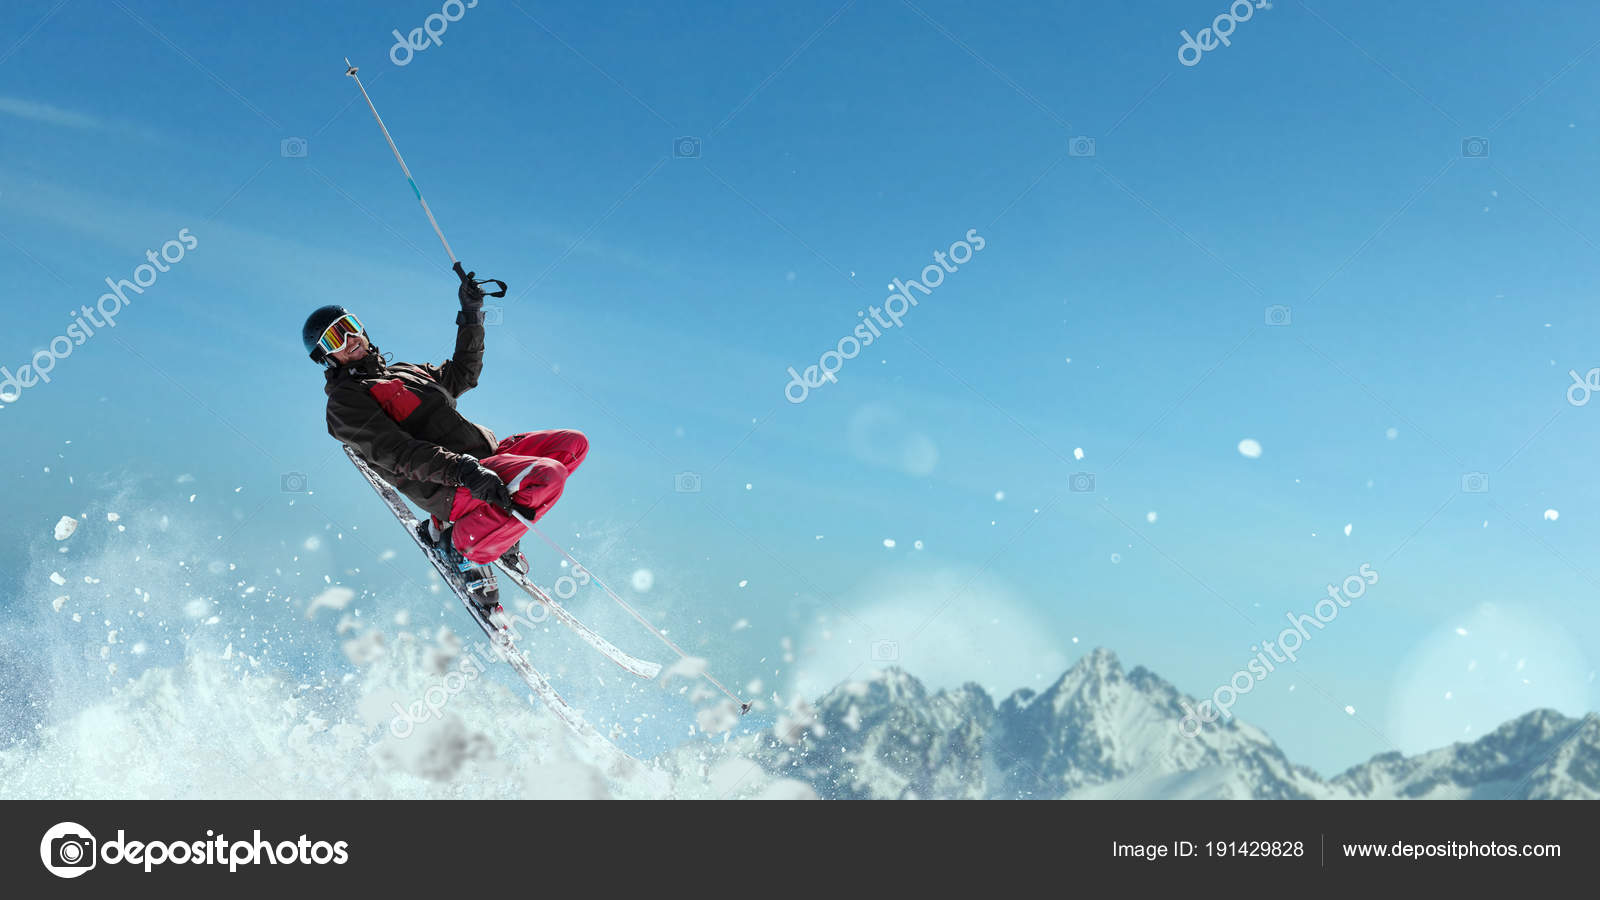 Snowboarder Jumping On Speed Slope Sportsman In Action Winter Active Sport Extreme Lifestyle Photo By Nomadsoul1 Find Similar Images